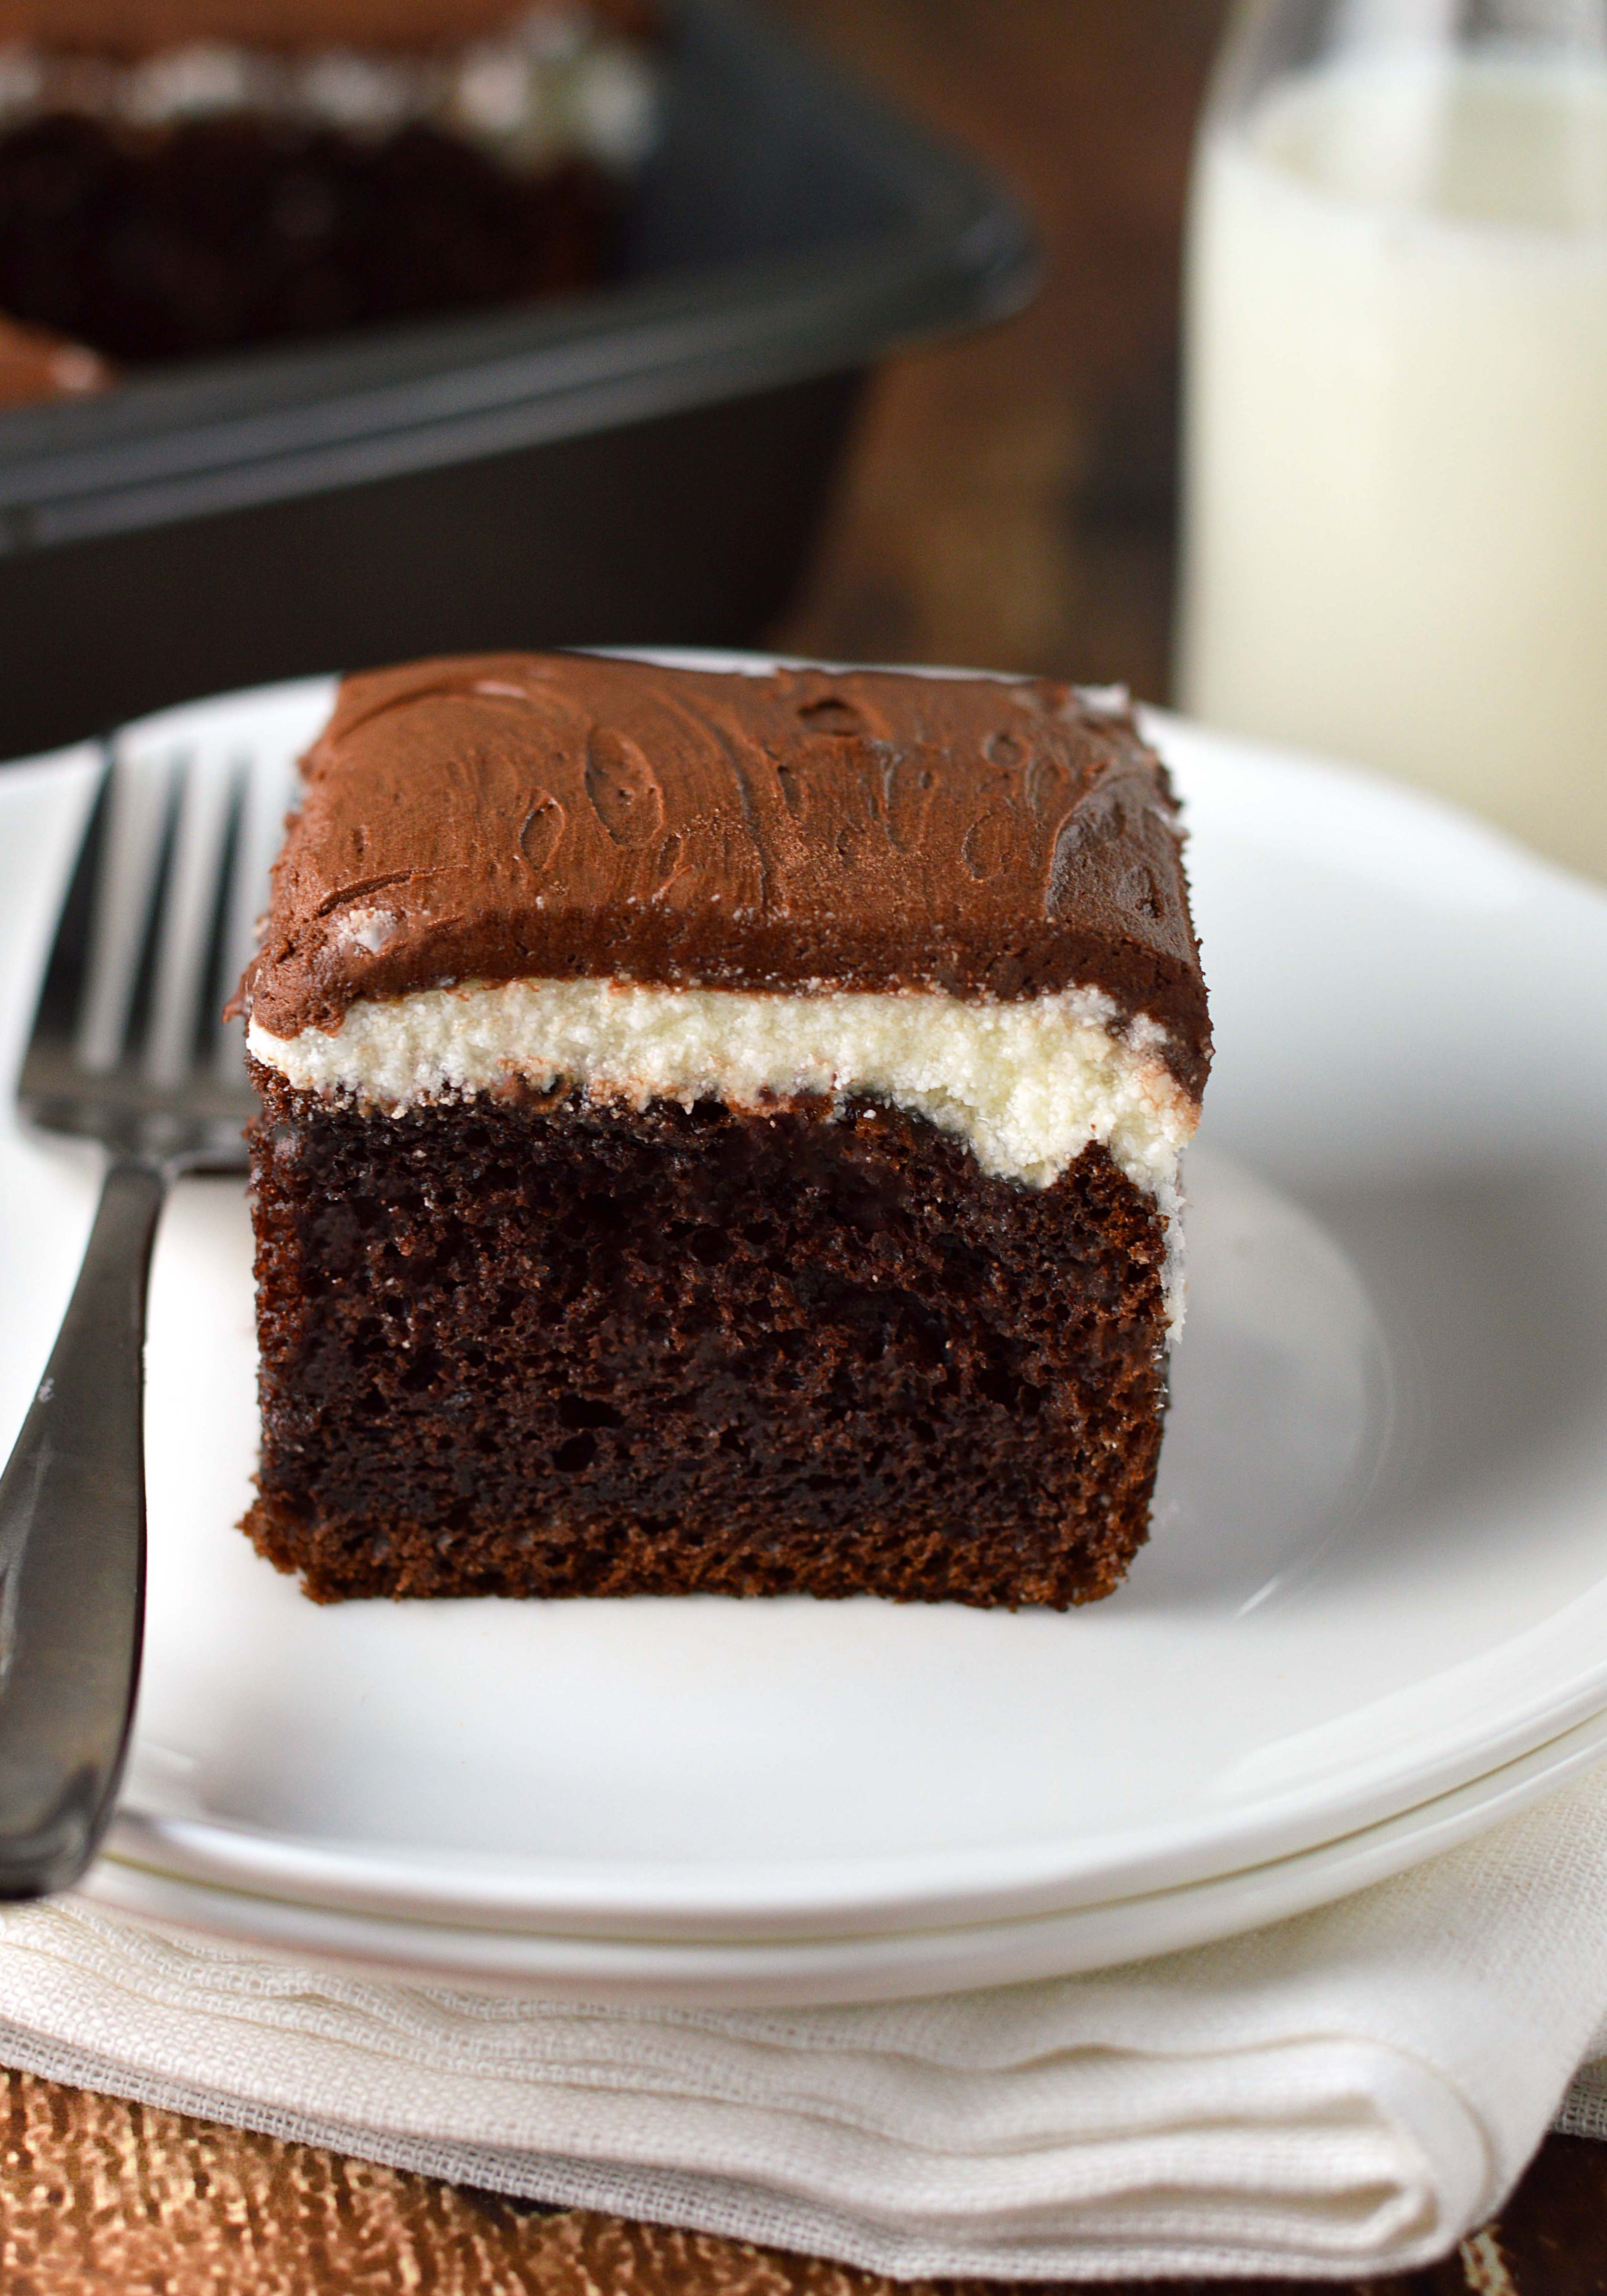 Chocolate Sour Cream Frosting With Unsweetened Chocolate